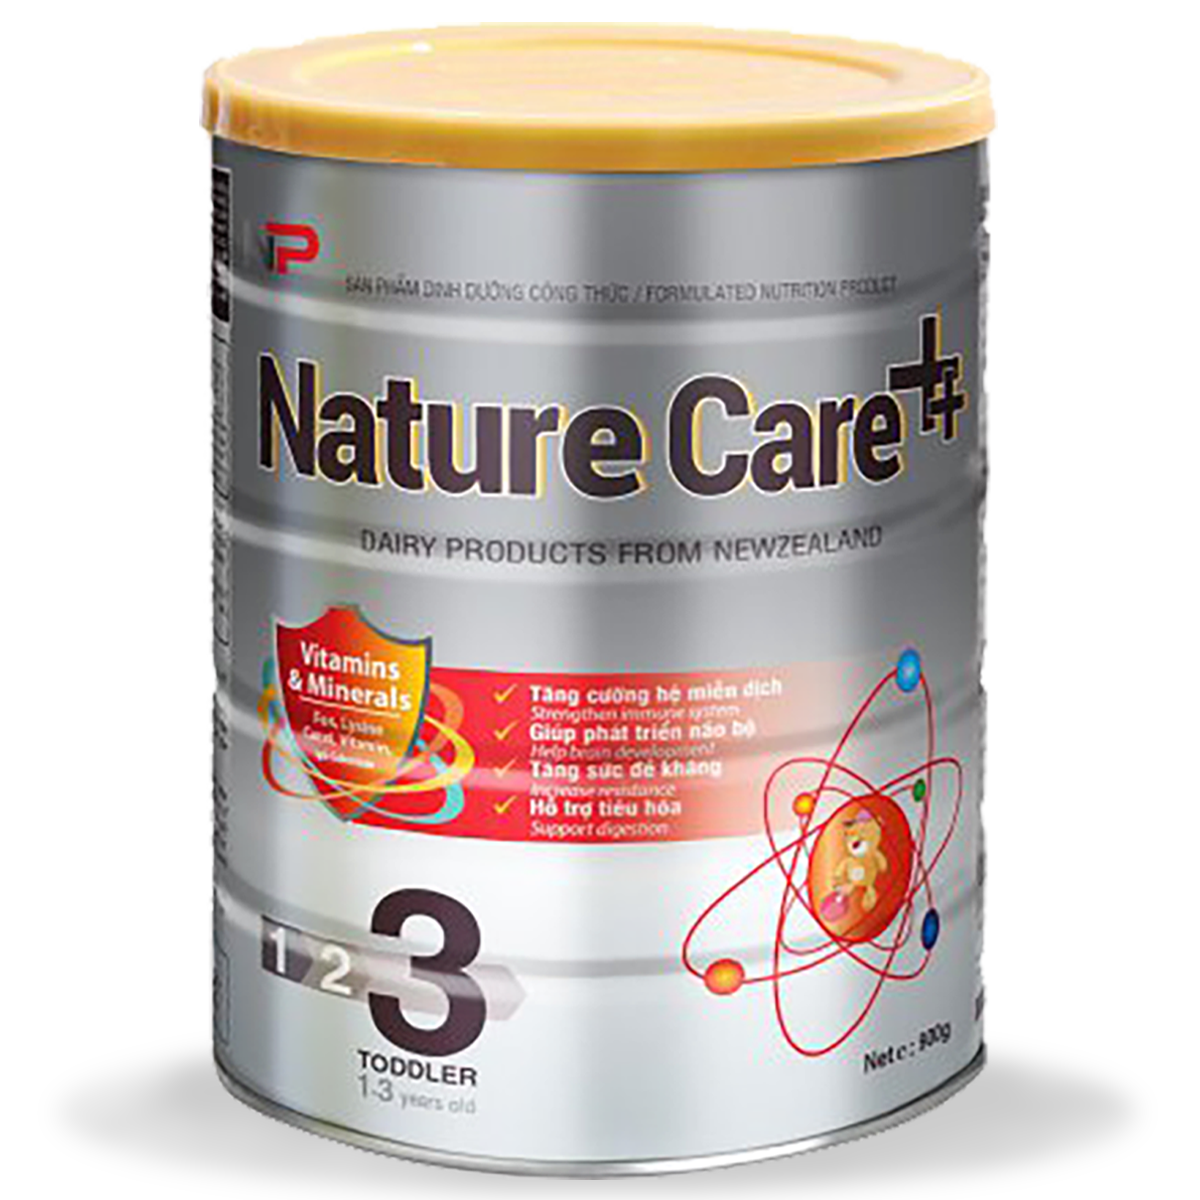 NATURE CARE TODDLER